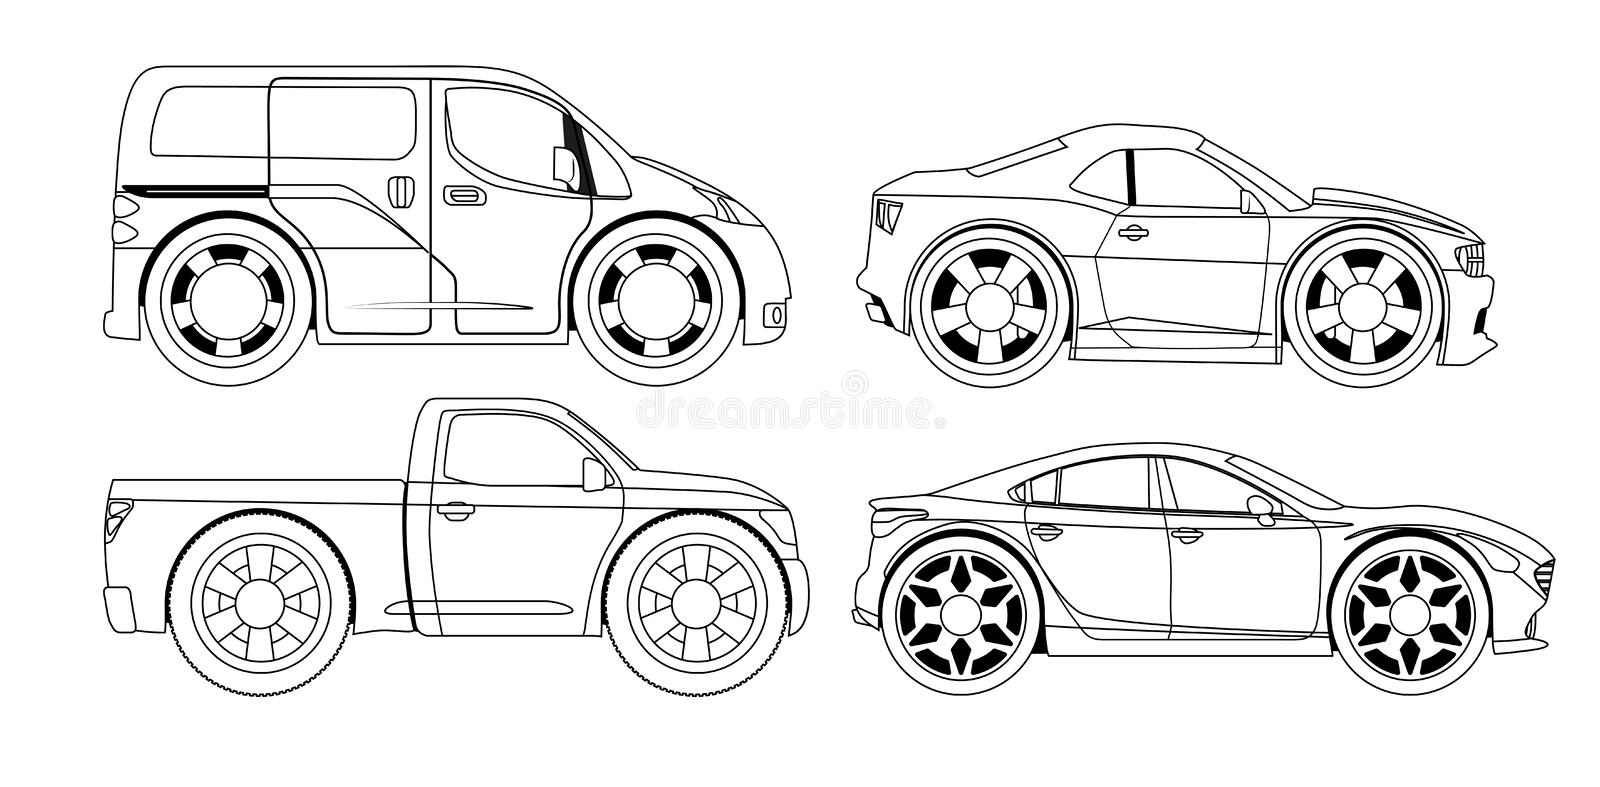 Coloring Book: Stylized Cars Set Stock Vector